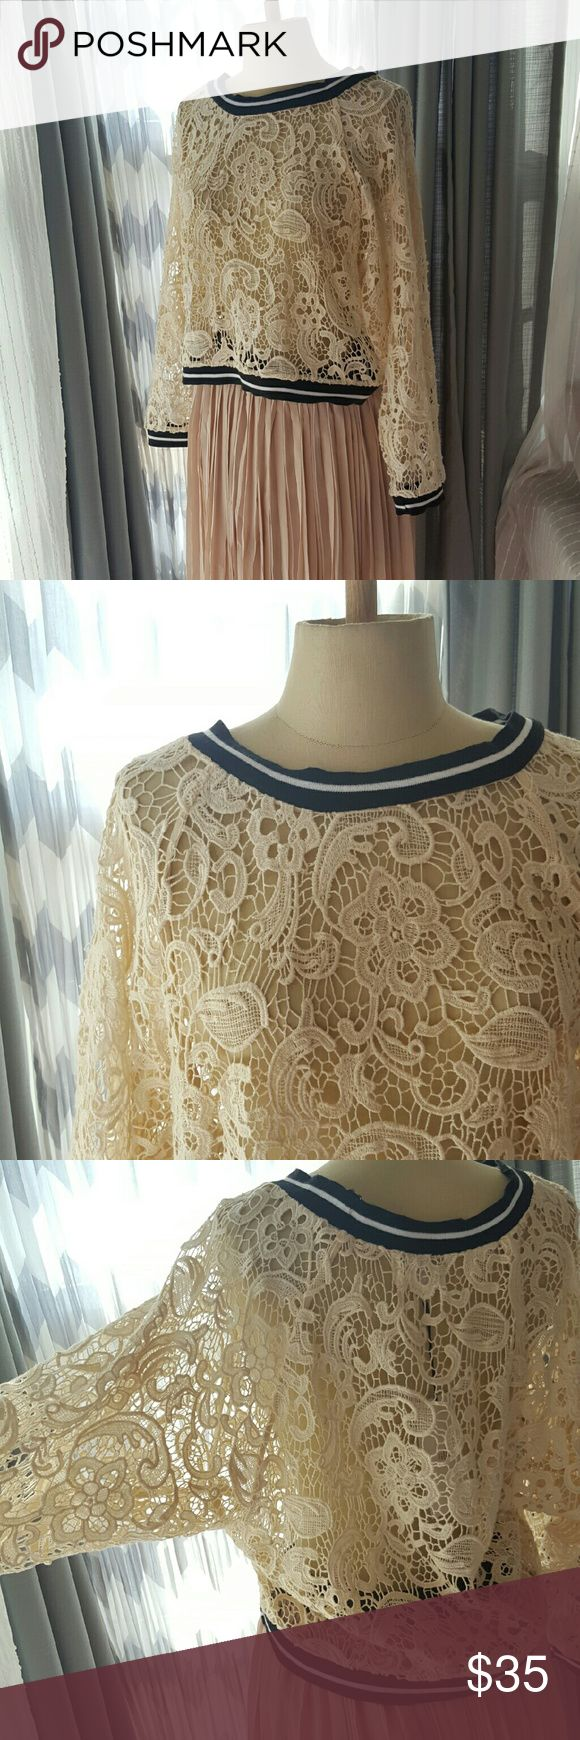 "NATURAL BEAUTY crochet lace batwing top Stand out in this gorgeous, batwing crochet top with varsity black/white neckline and cuff detail. Crochet is a natural cream color. Perfect with vegan leather skirt listed in this closet!  All measurements laying flat. Length: 18"" Bust: 16"" Blush skirt is not for sale. No size - but it fit me and I'm a Medium. Pretty forgiving on both Sm and Medium. Lucca Couture Tops"